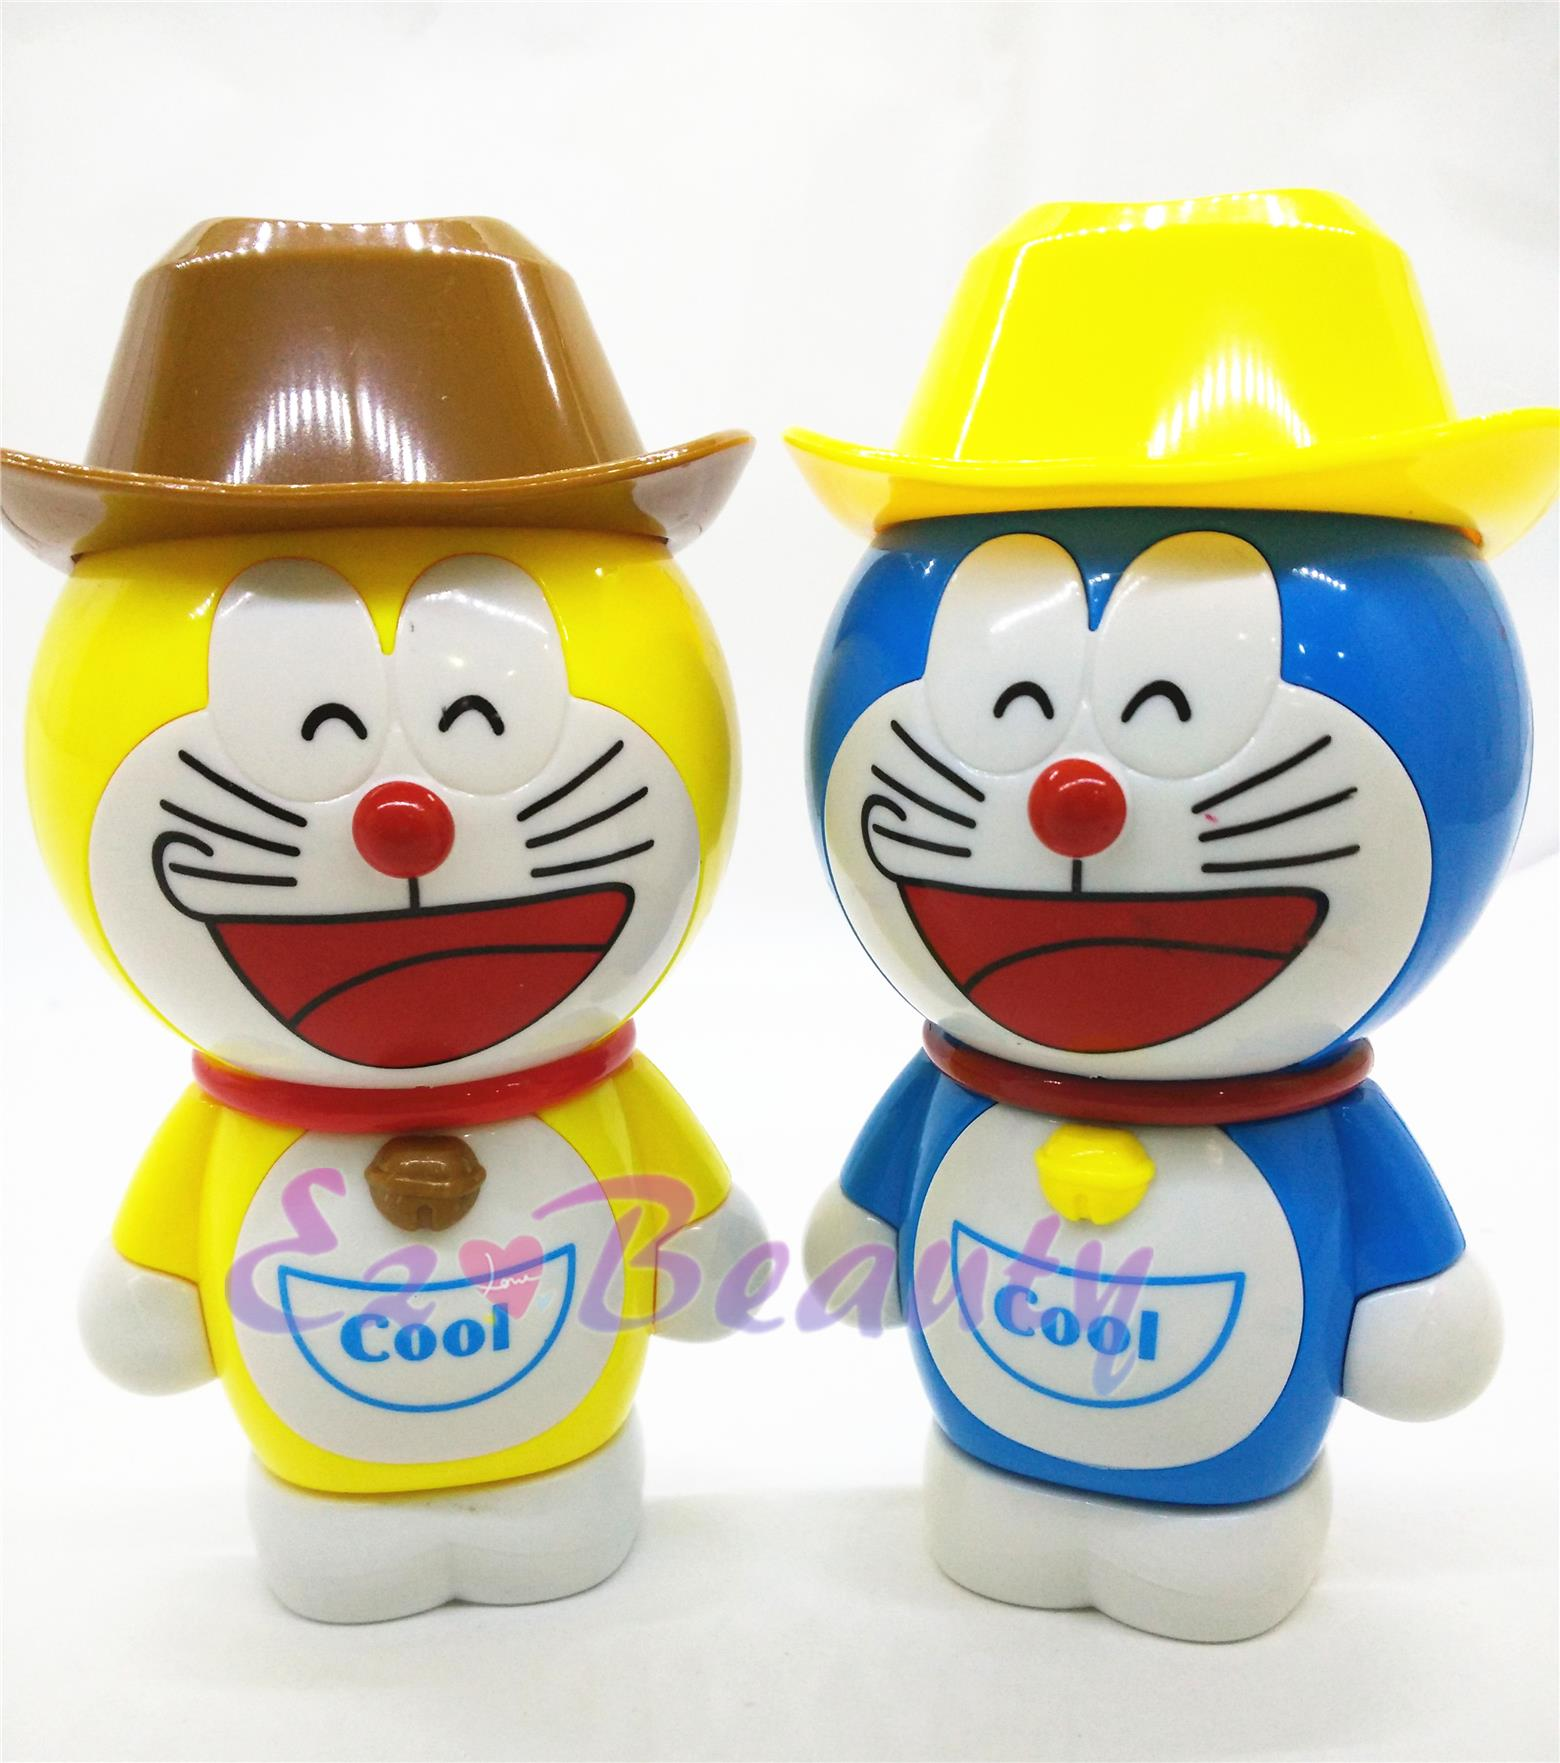 doraemon-rechargeable-super-wind-fan-ezbeauty-1510-05-EzBeauty@3.jpg